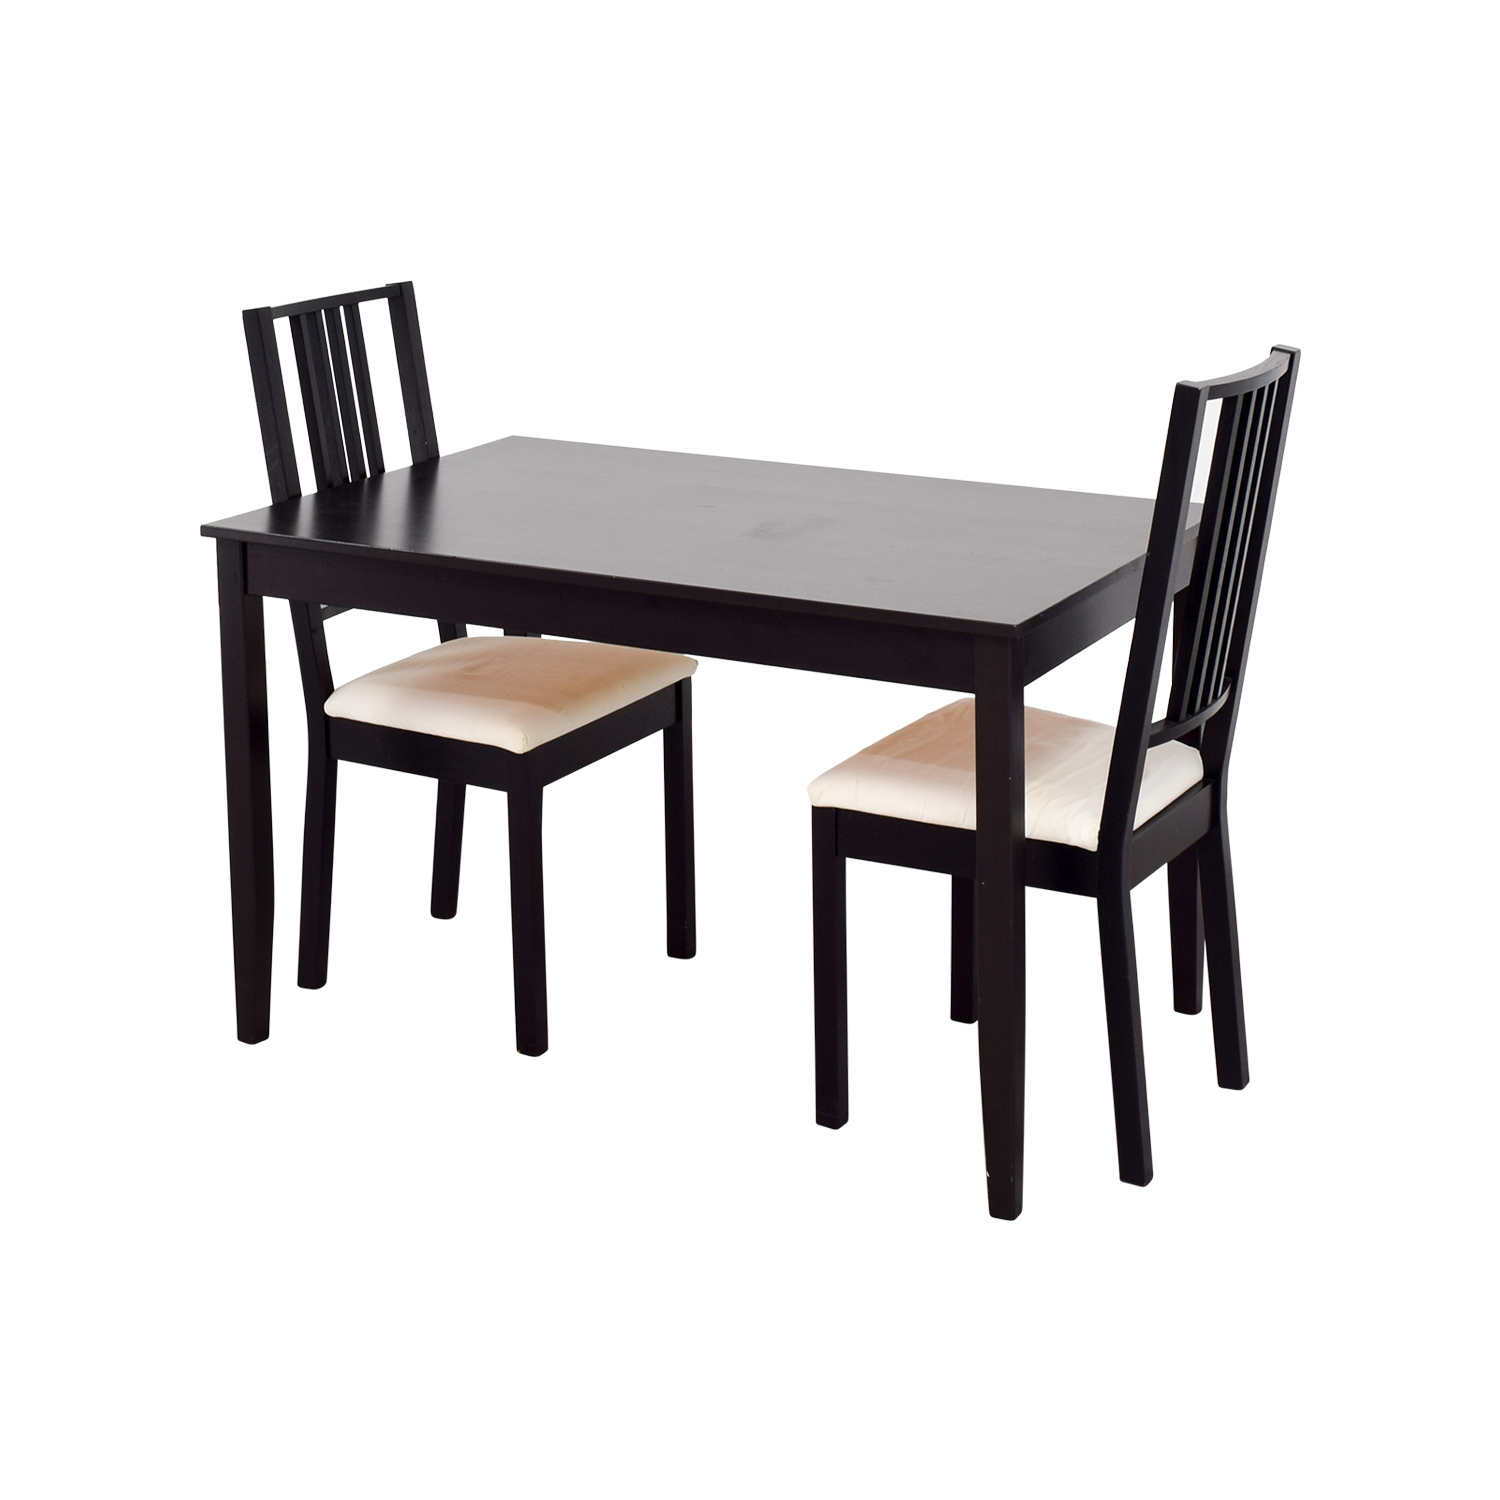 62 off ikea ikea three piece dining set tables for Ikea dining table and chairs set